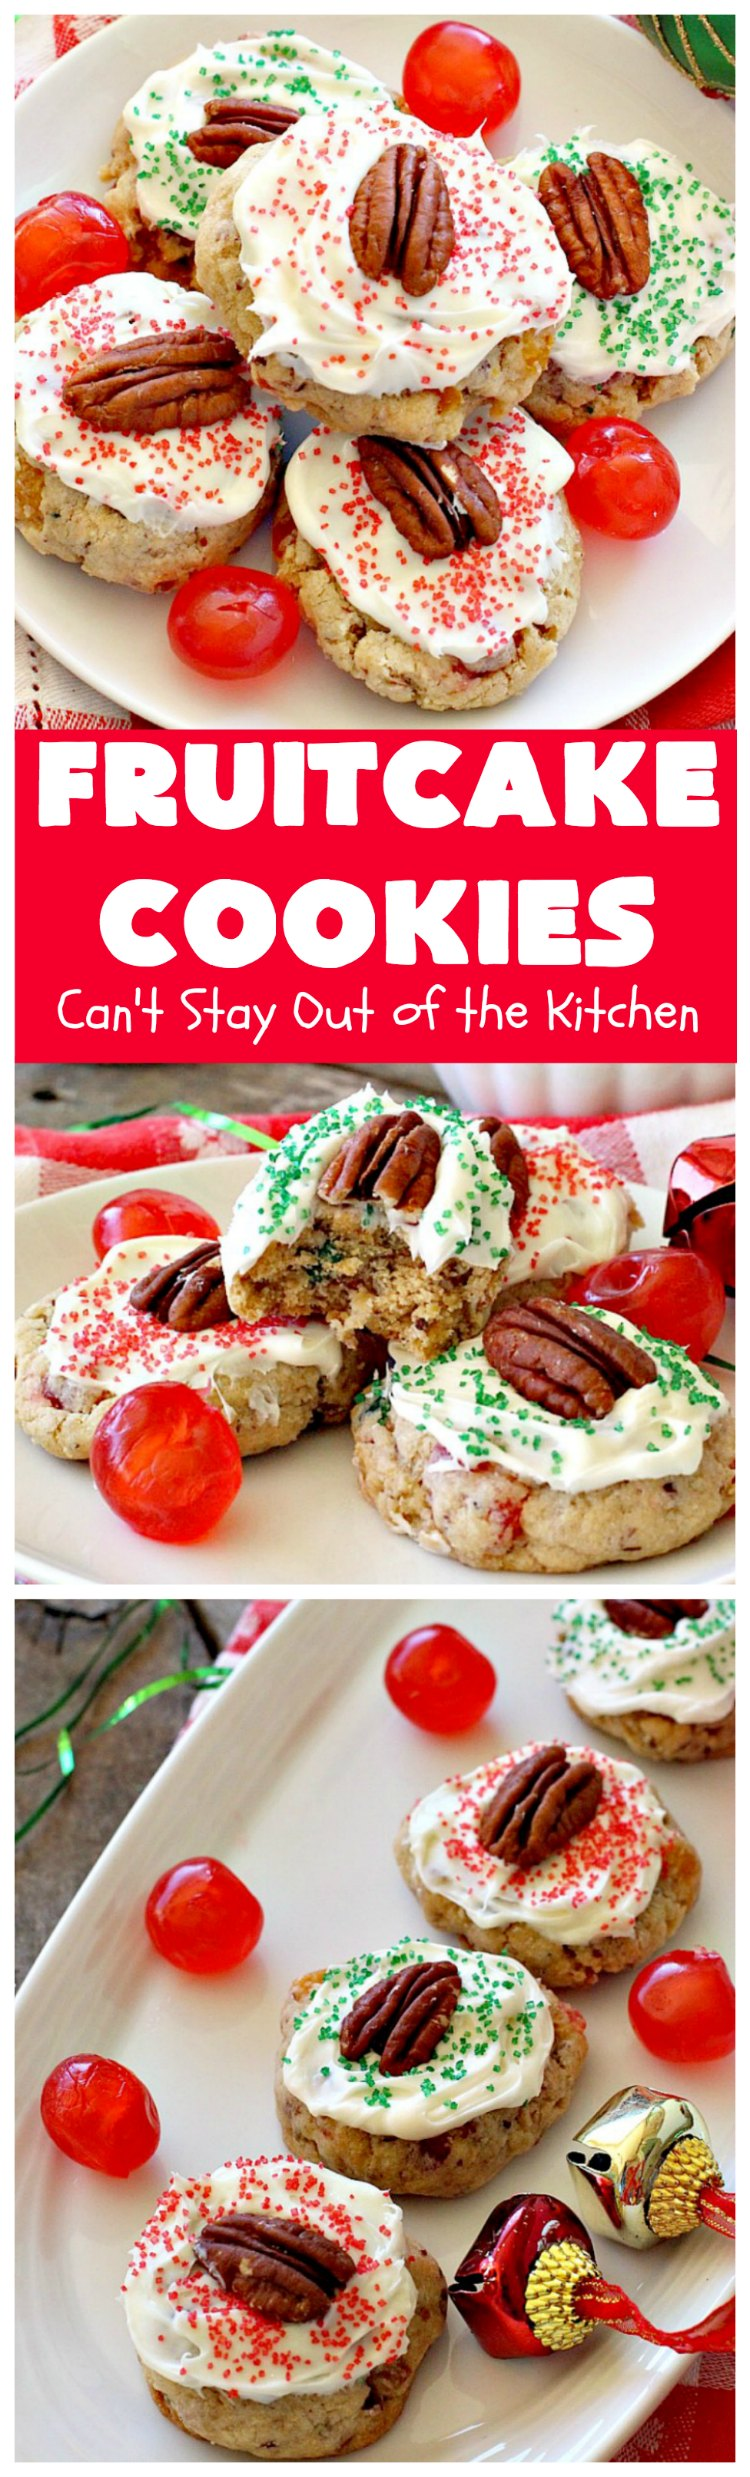 Fruitcake cookies can t stay out of the kitchen